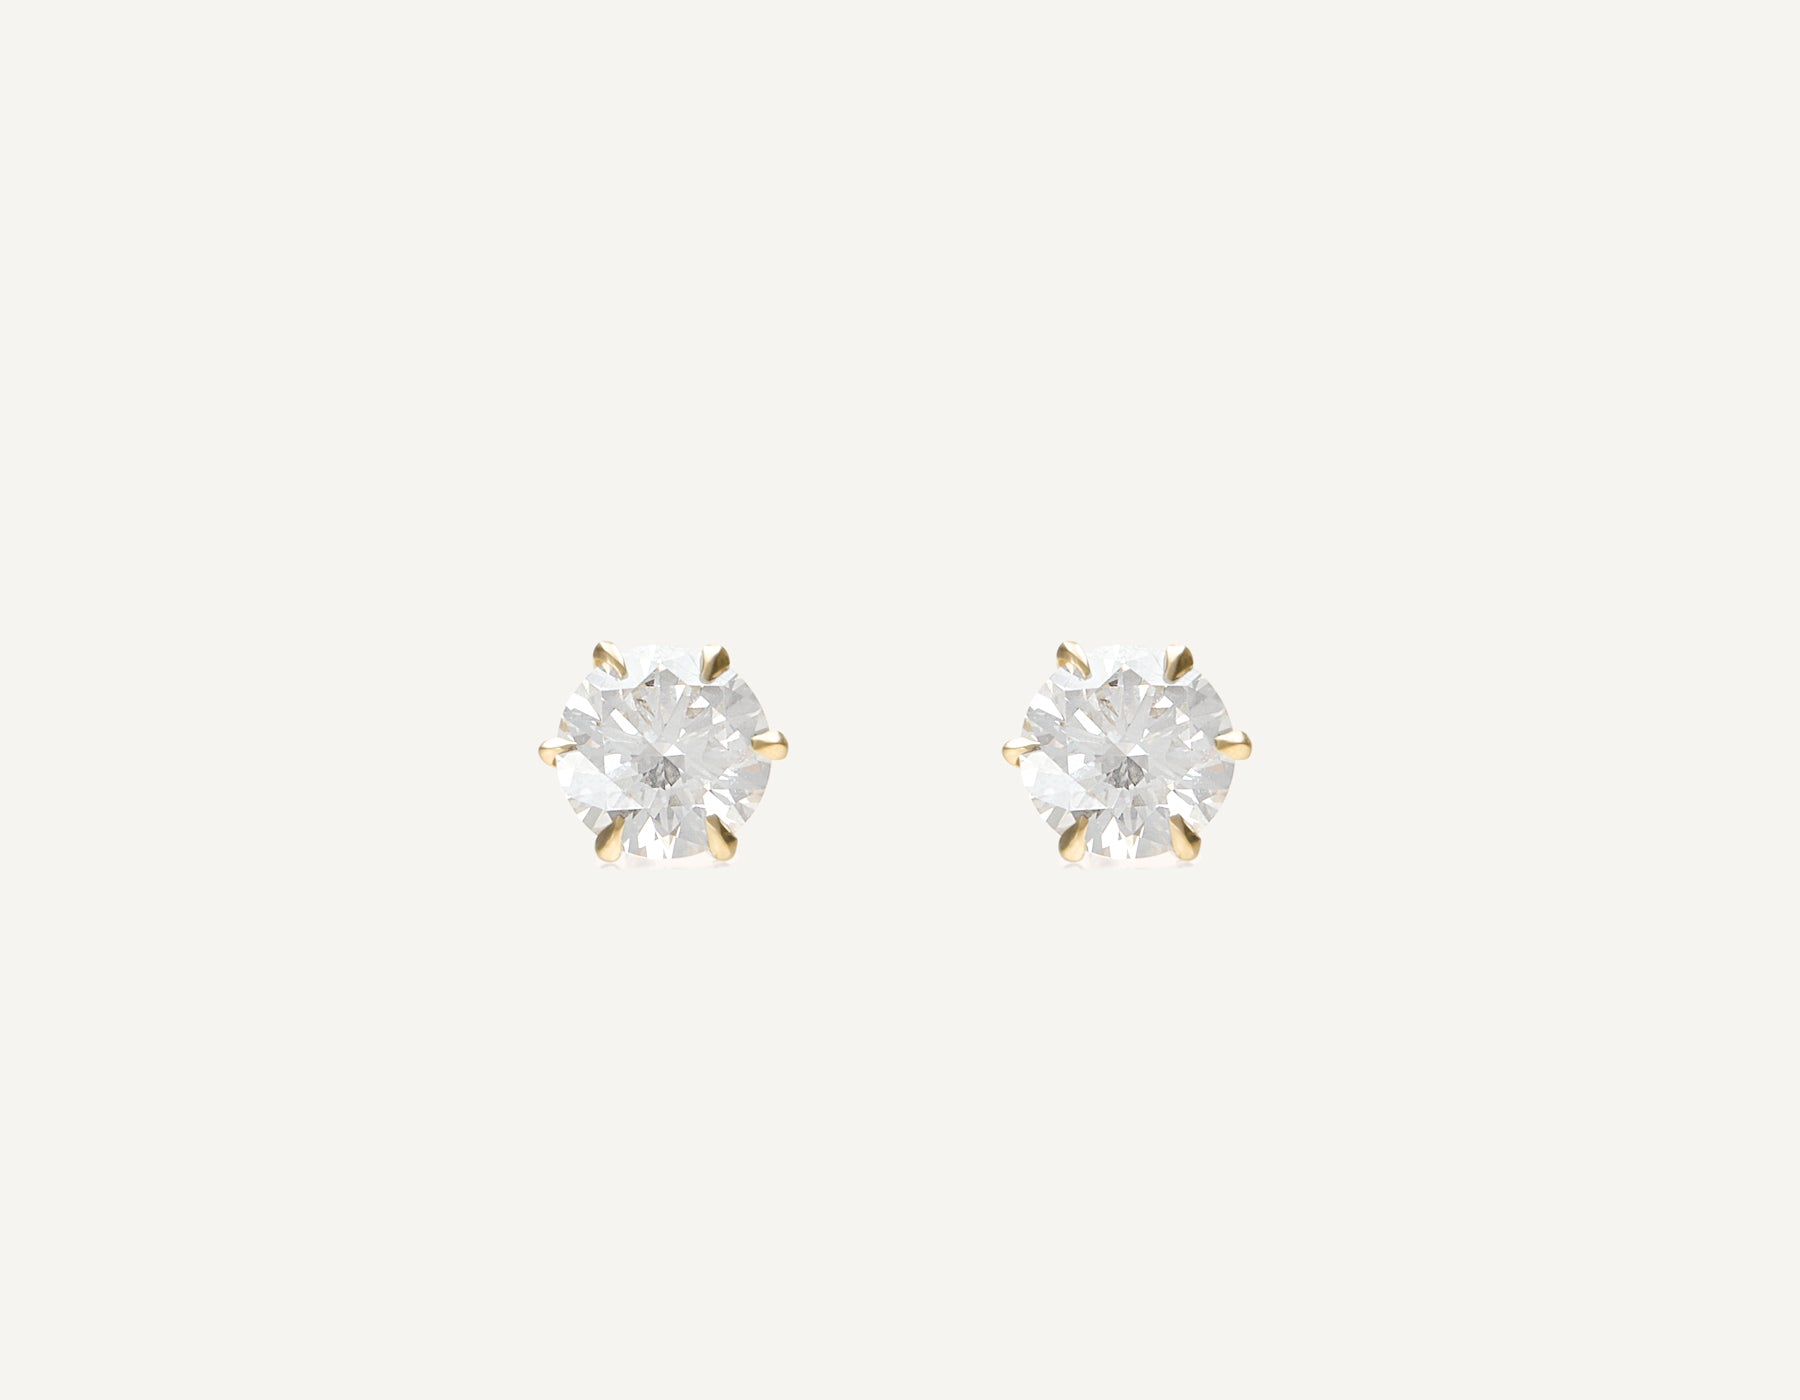 198d8476c simple classic 18k solid gold 1.0 ct Round Brilliant Diamond Studs earring  by Vrai and Oro